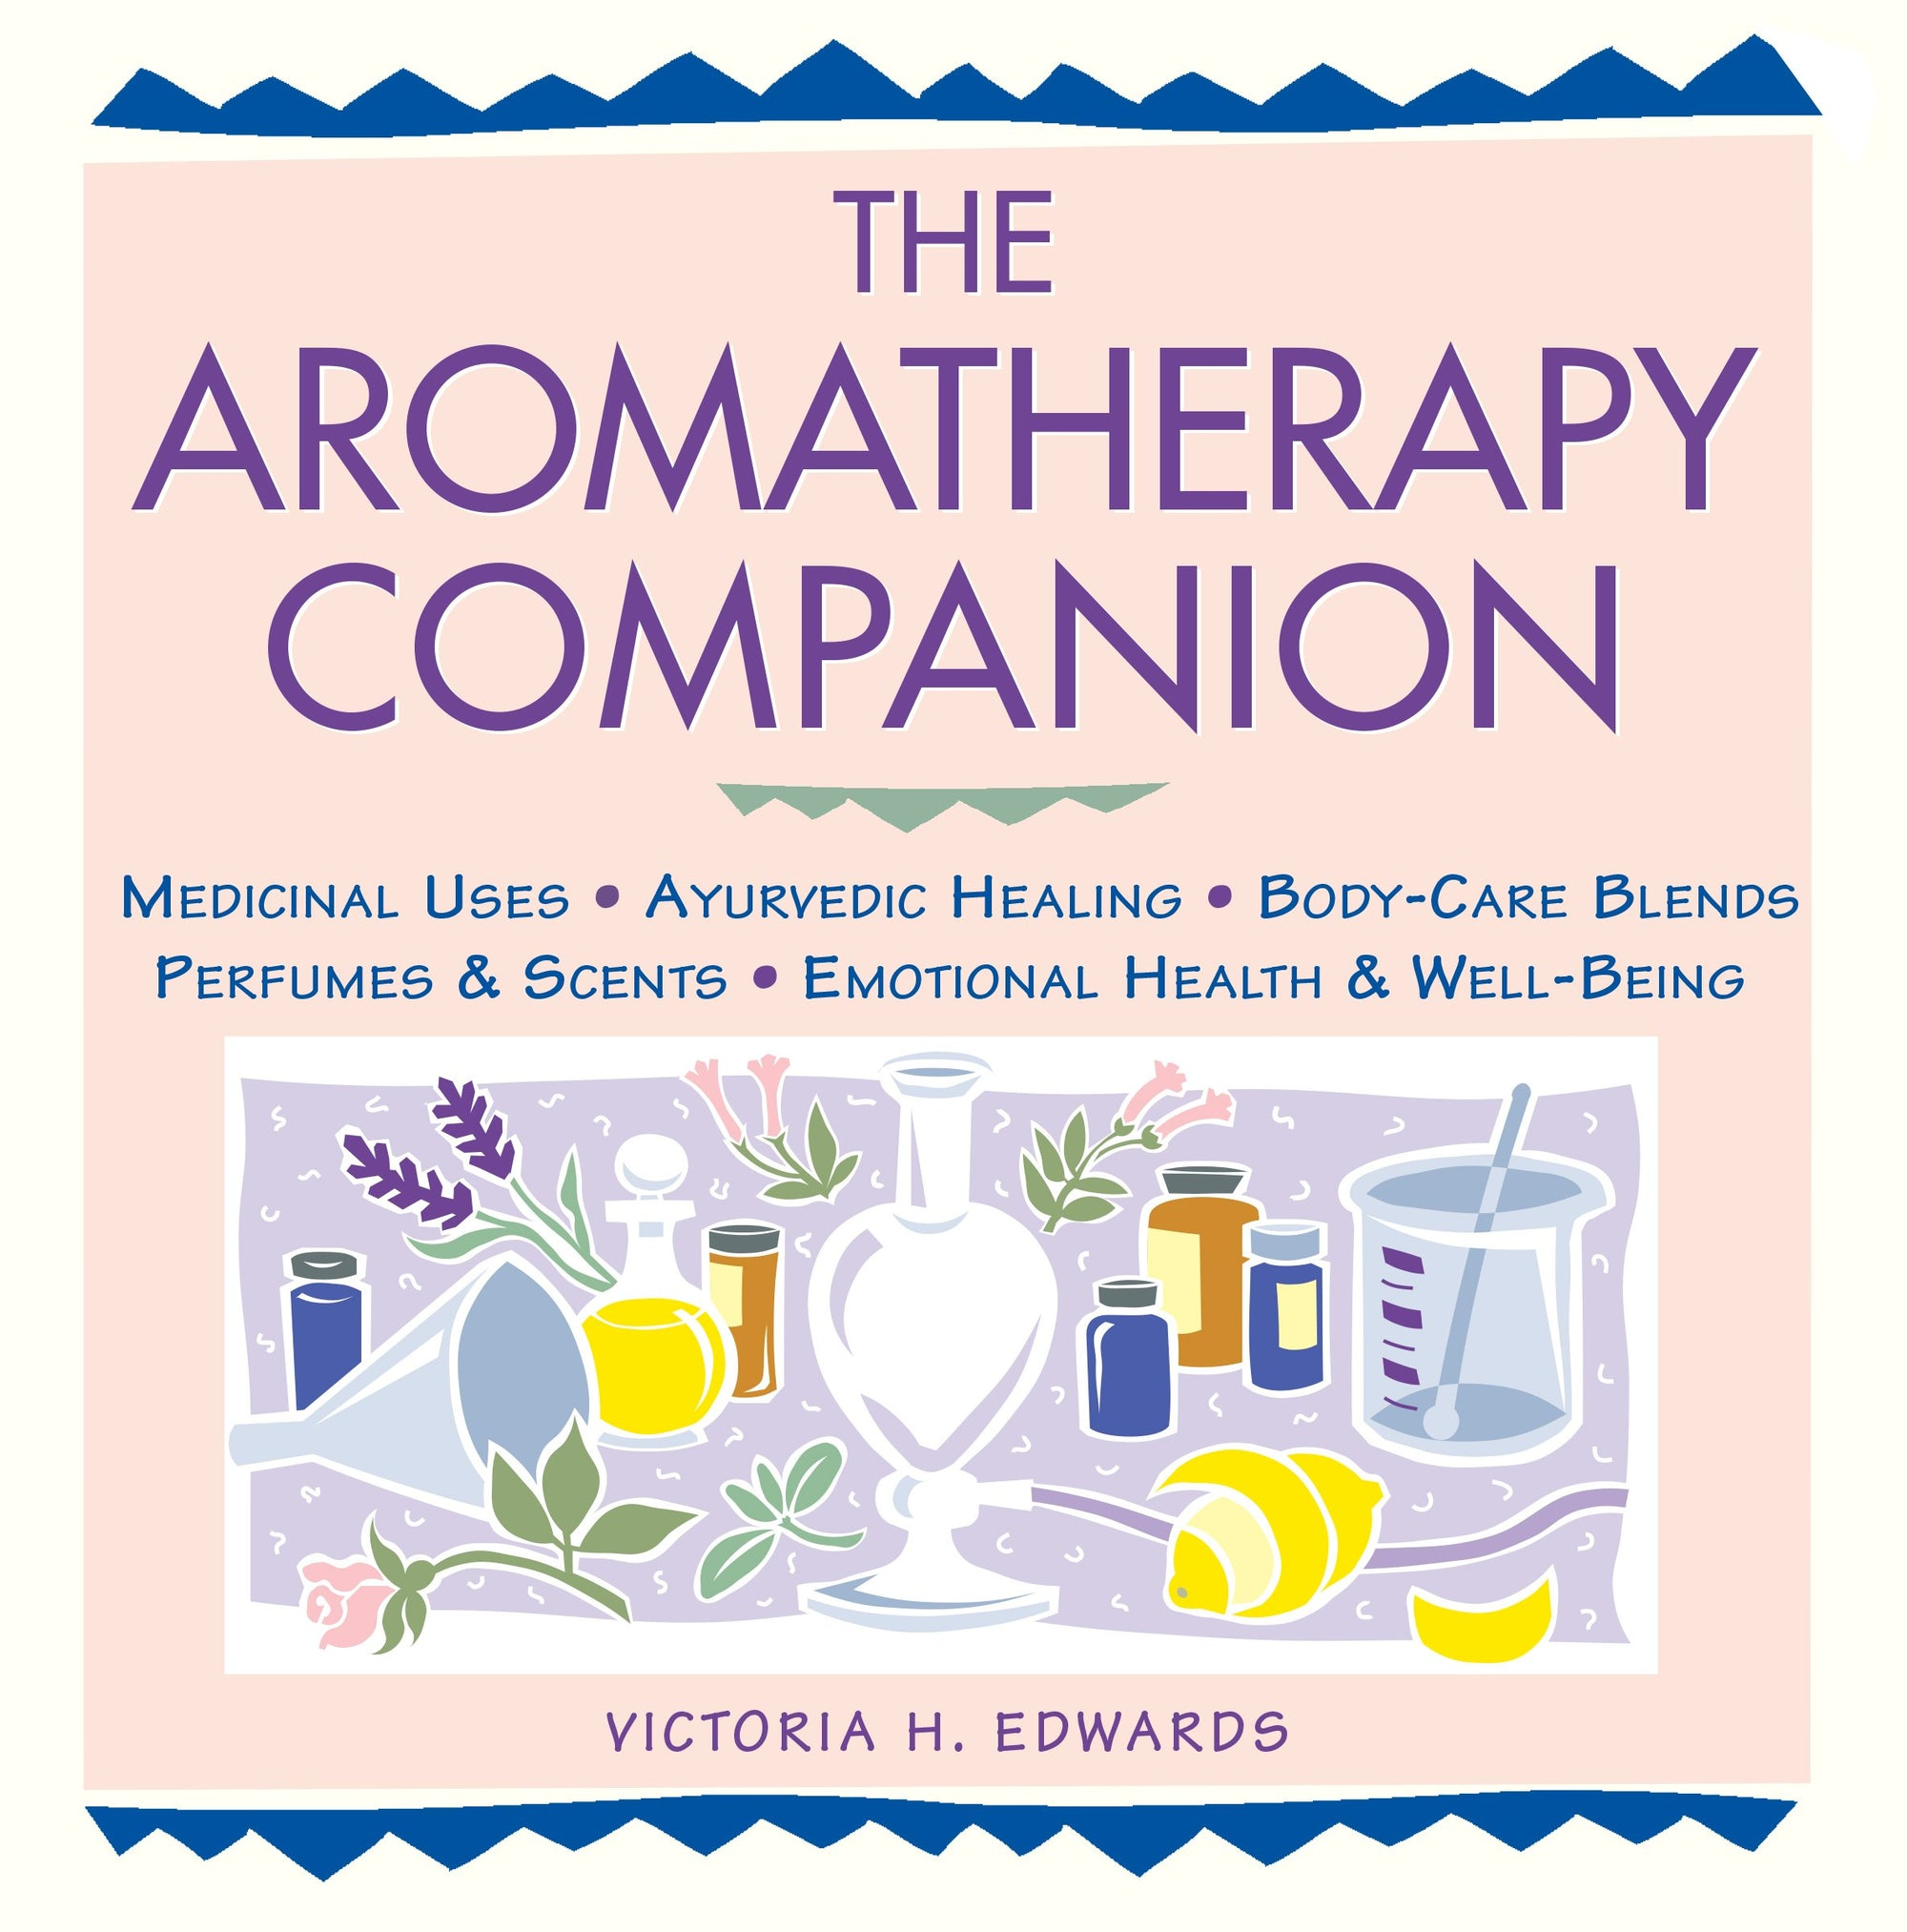 Aromatherapy Companion by Victoria H. Edwards